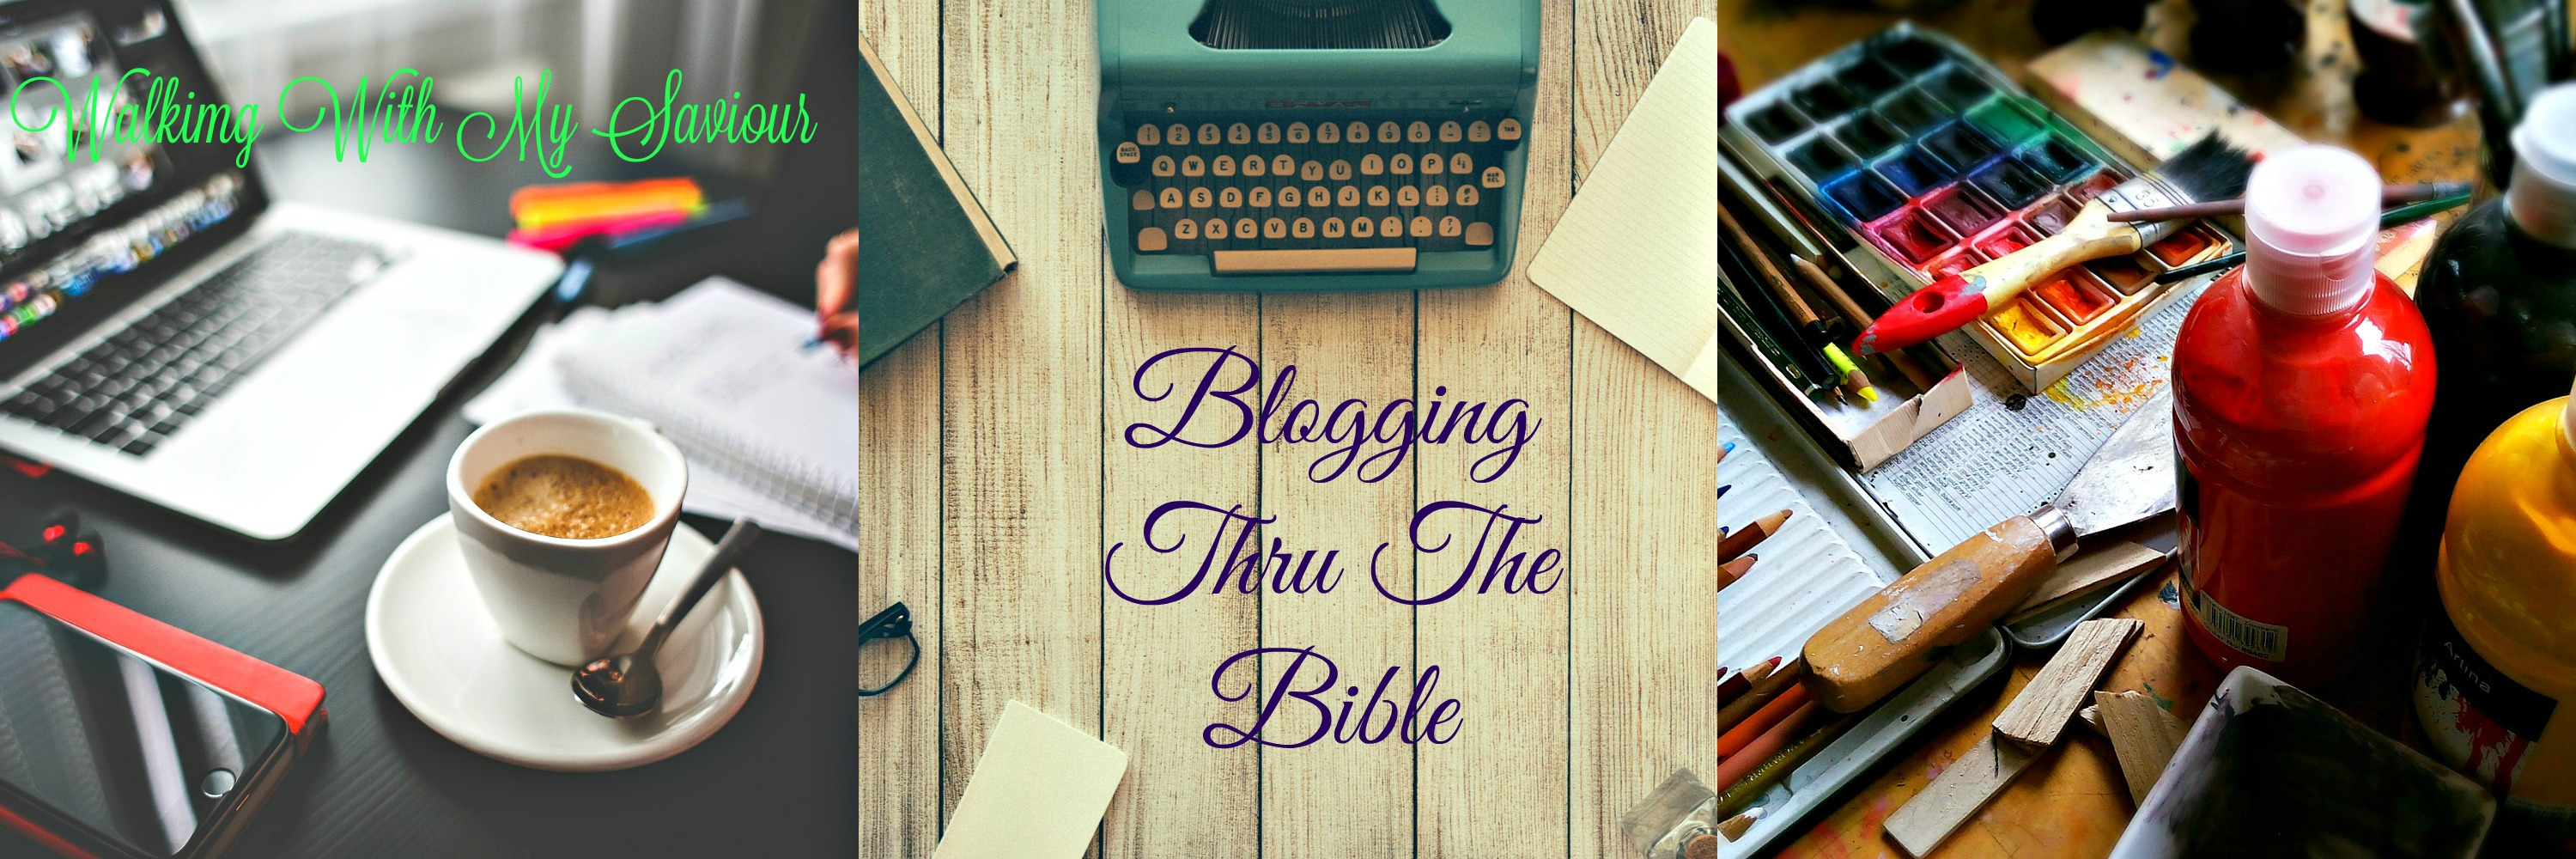 BLOGGING THRU THE BIBLE:  Top 10 Reasons to Memorize the Book of Romans